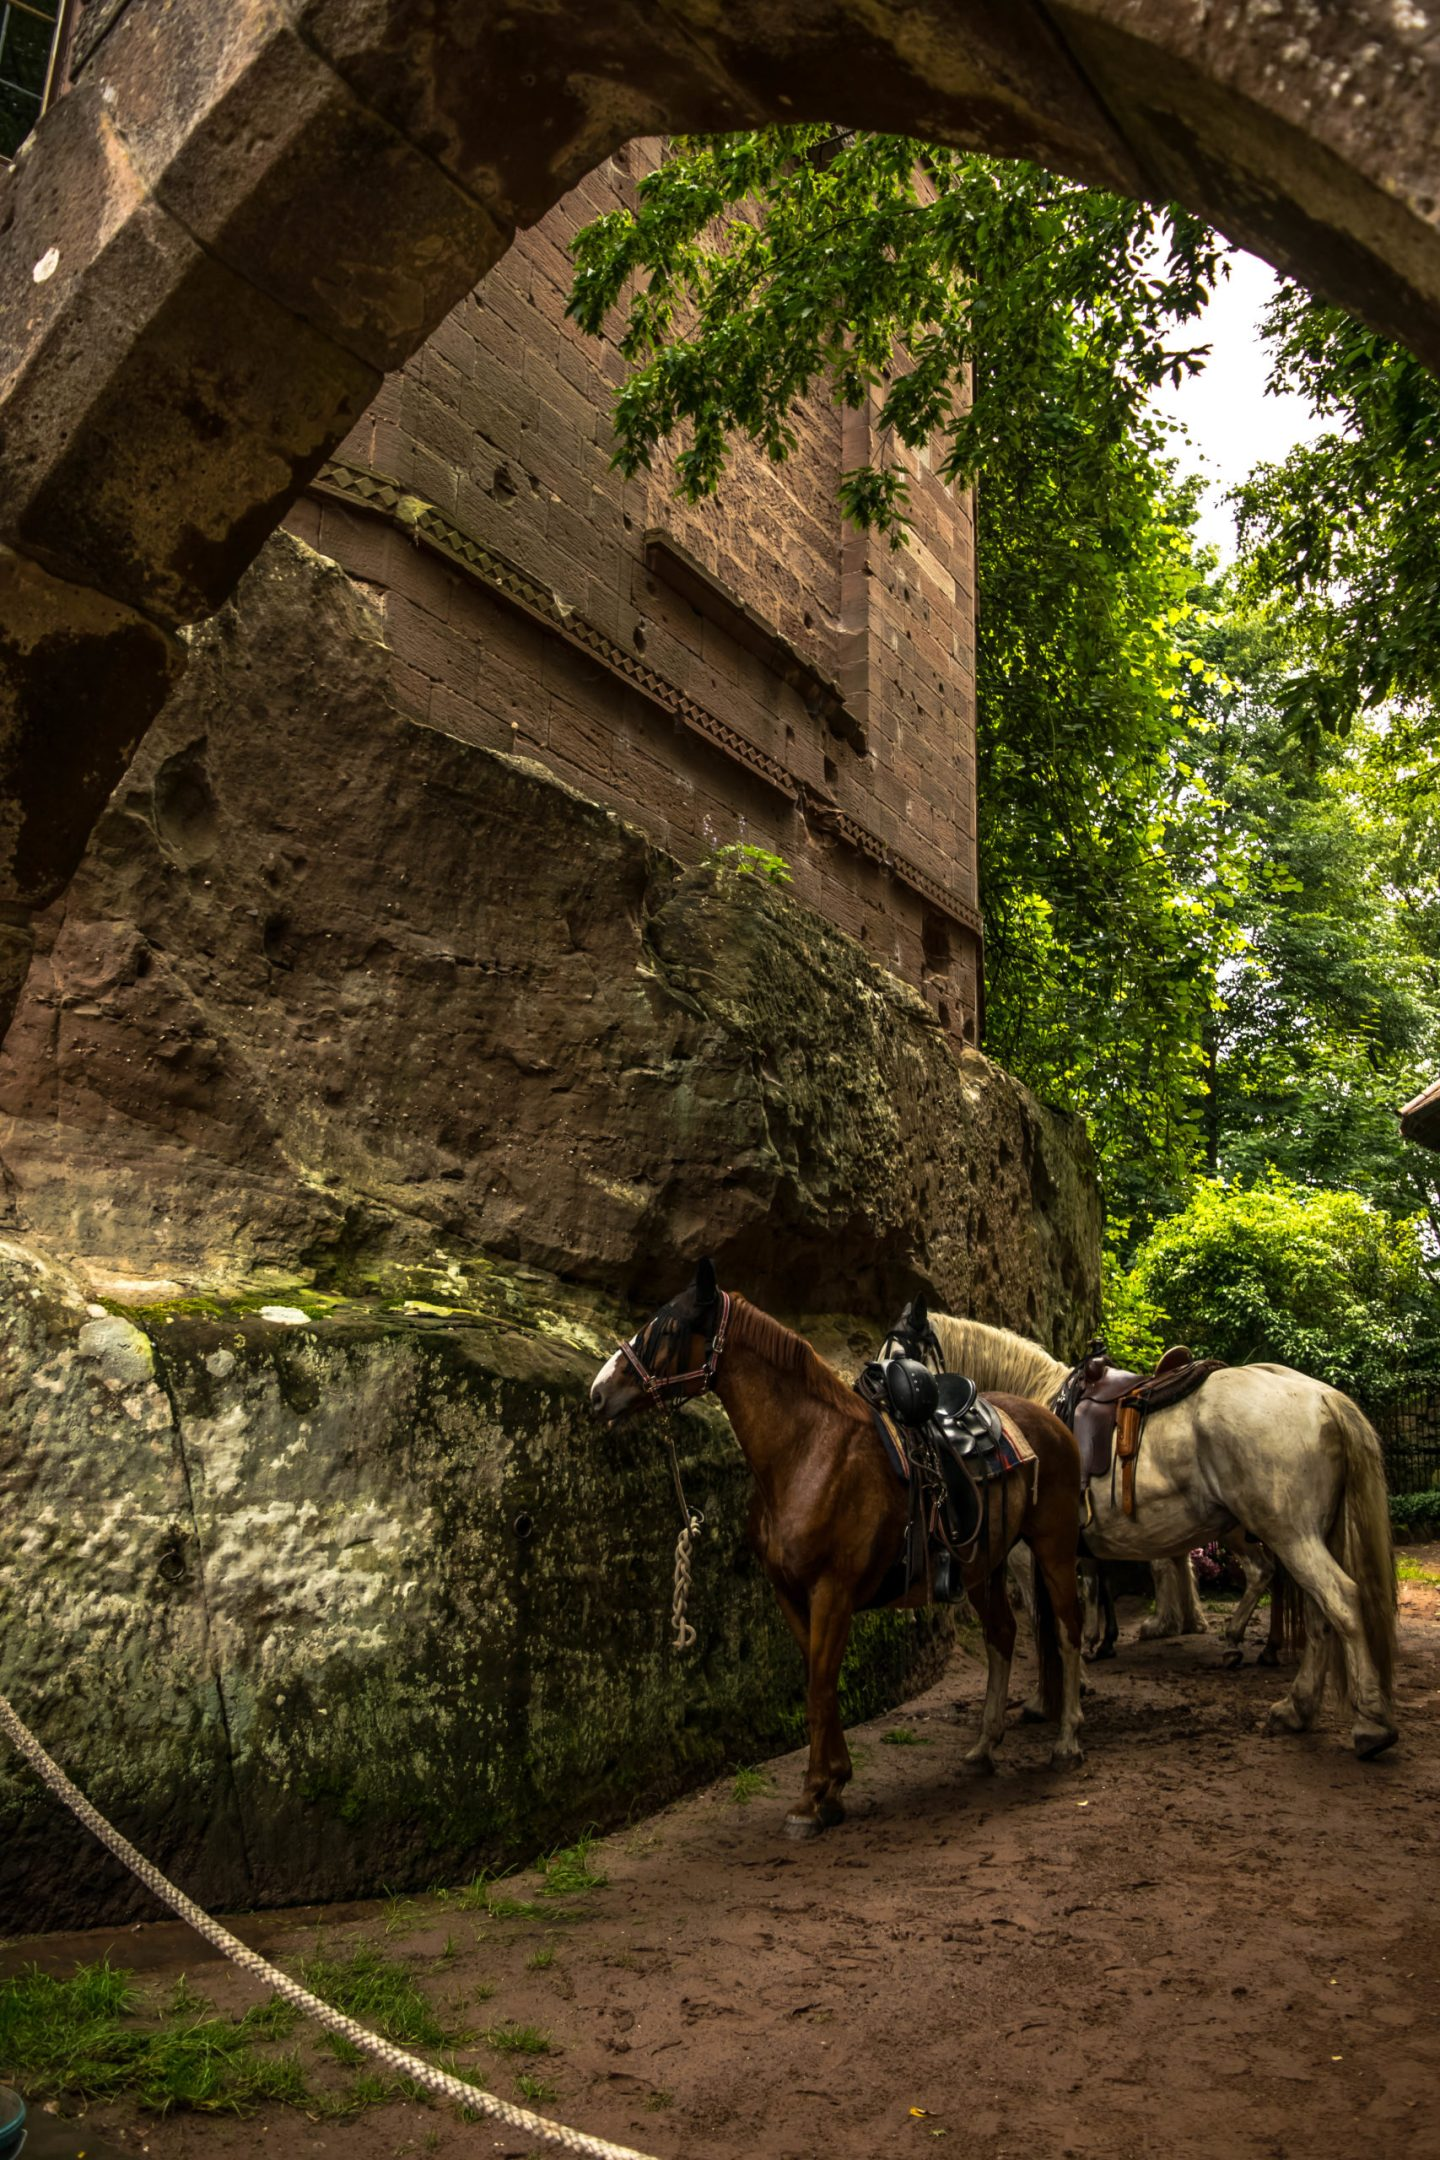 Local equestrians were going through a ride for the forest, and their horses tied up here looked so picturesque.